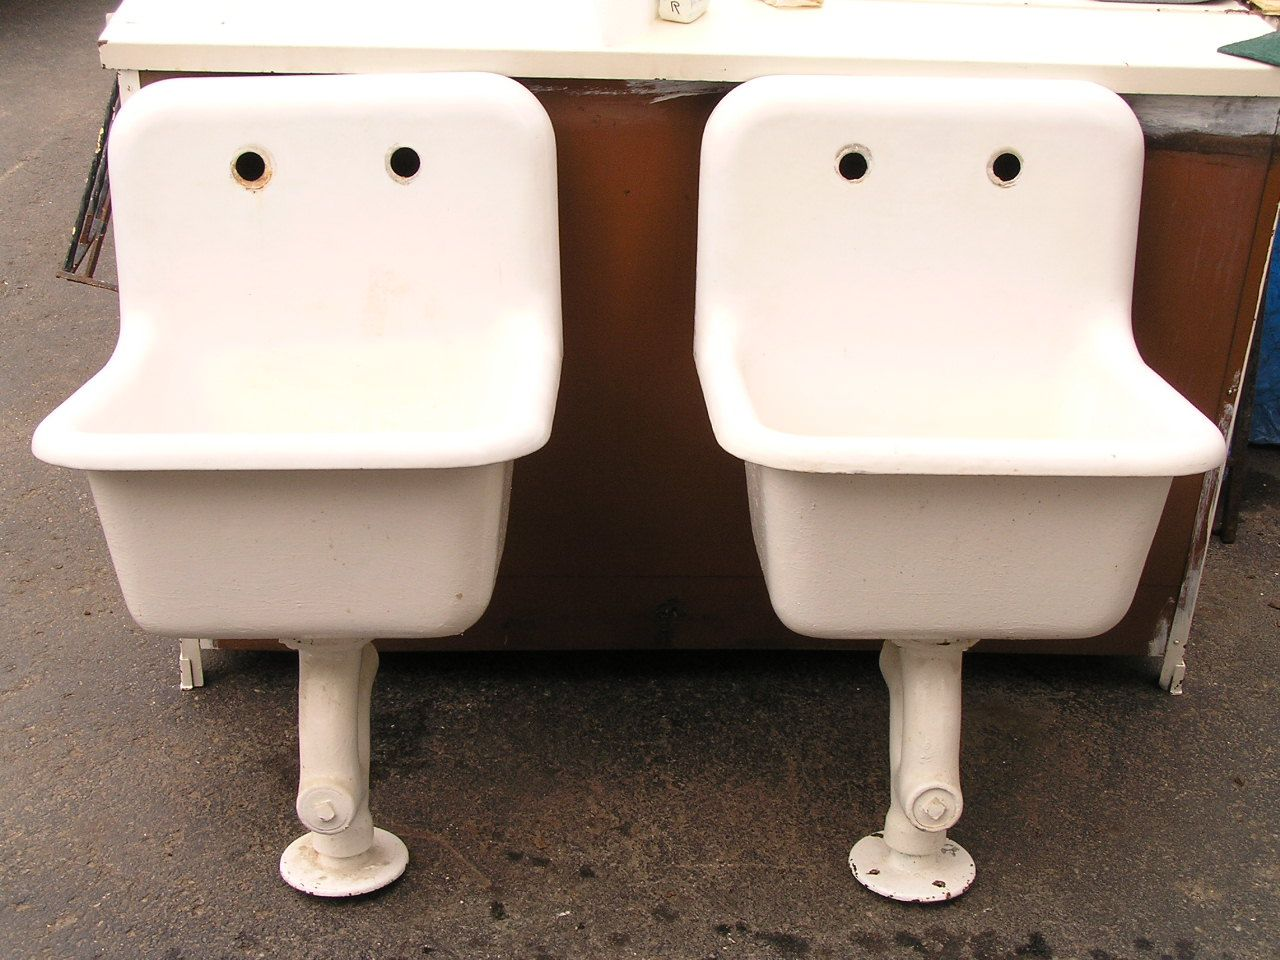 Antique Utility Sinks With Images Utility Sink Laundry Sink Sink